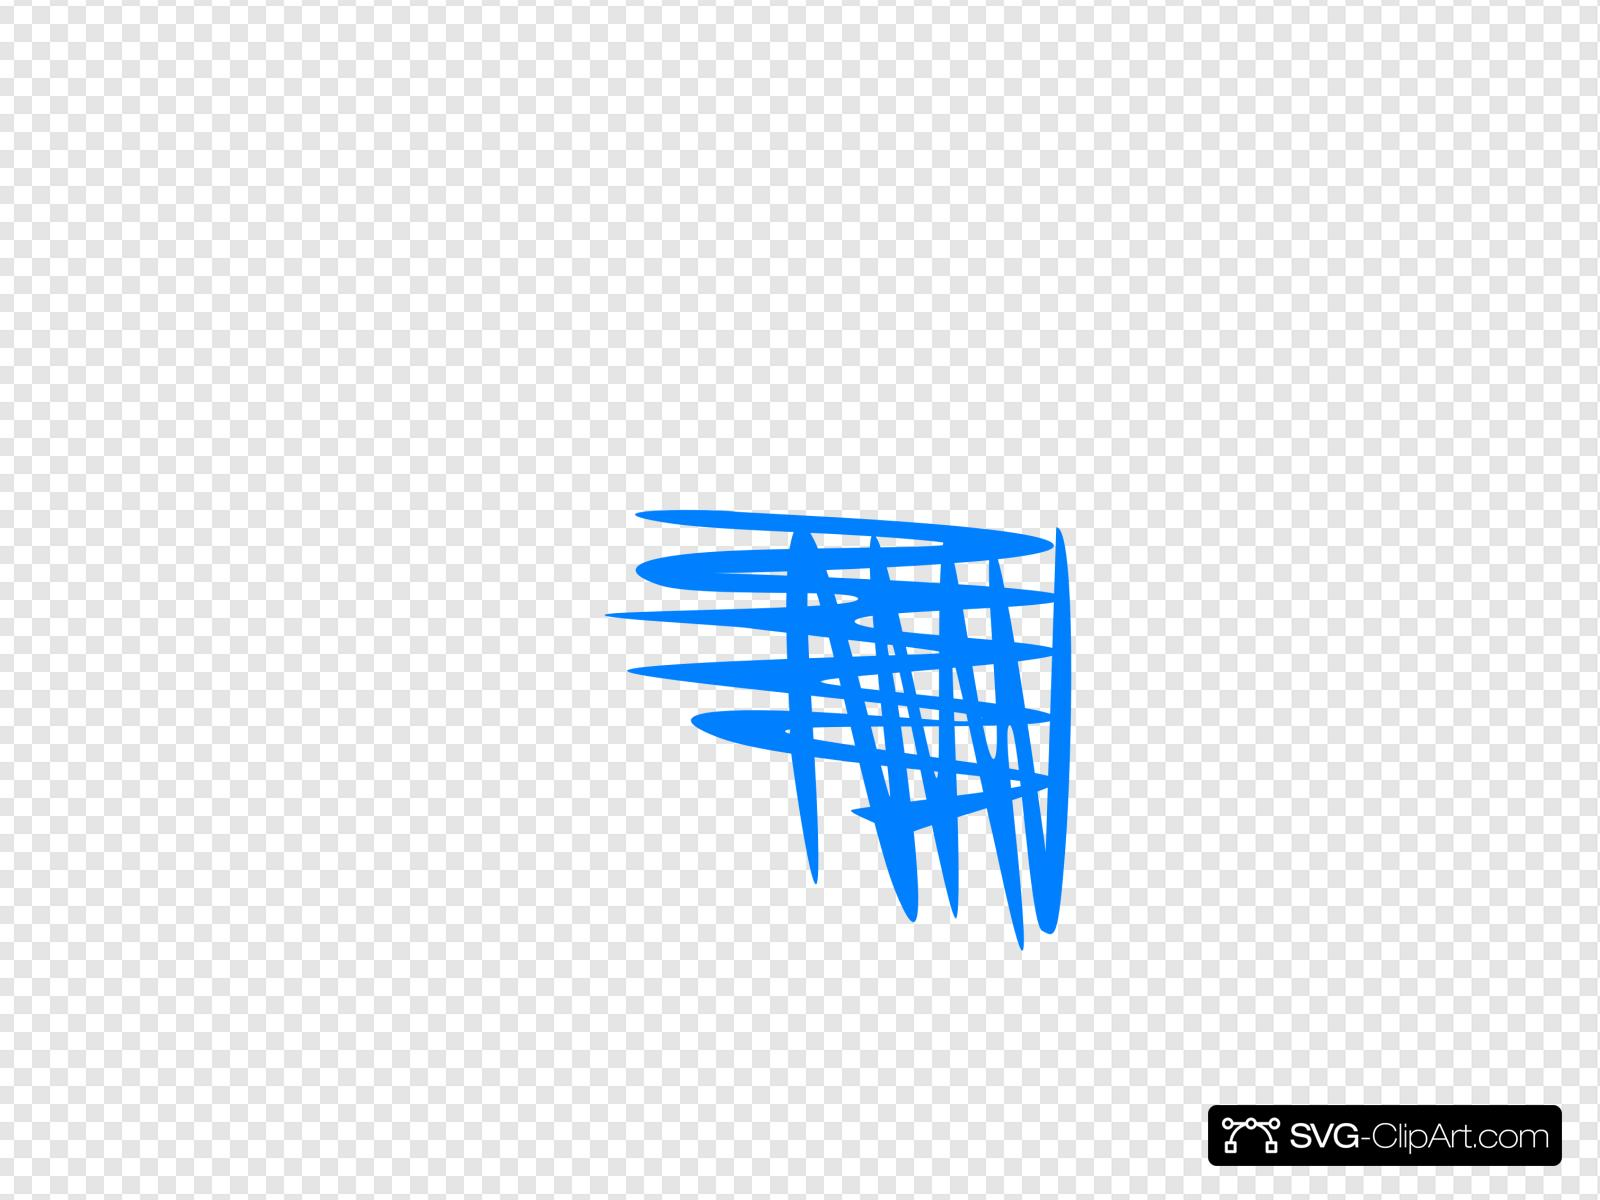 Blue Cross Hatch Shading Clip art, Icon and SVG.